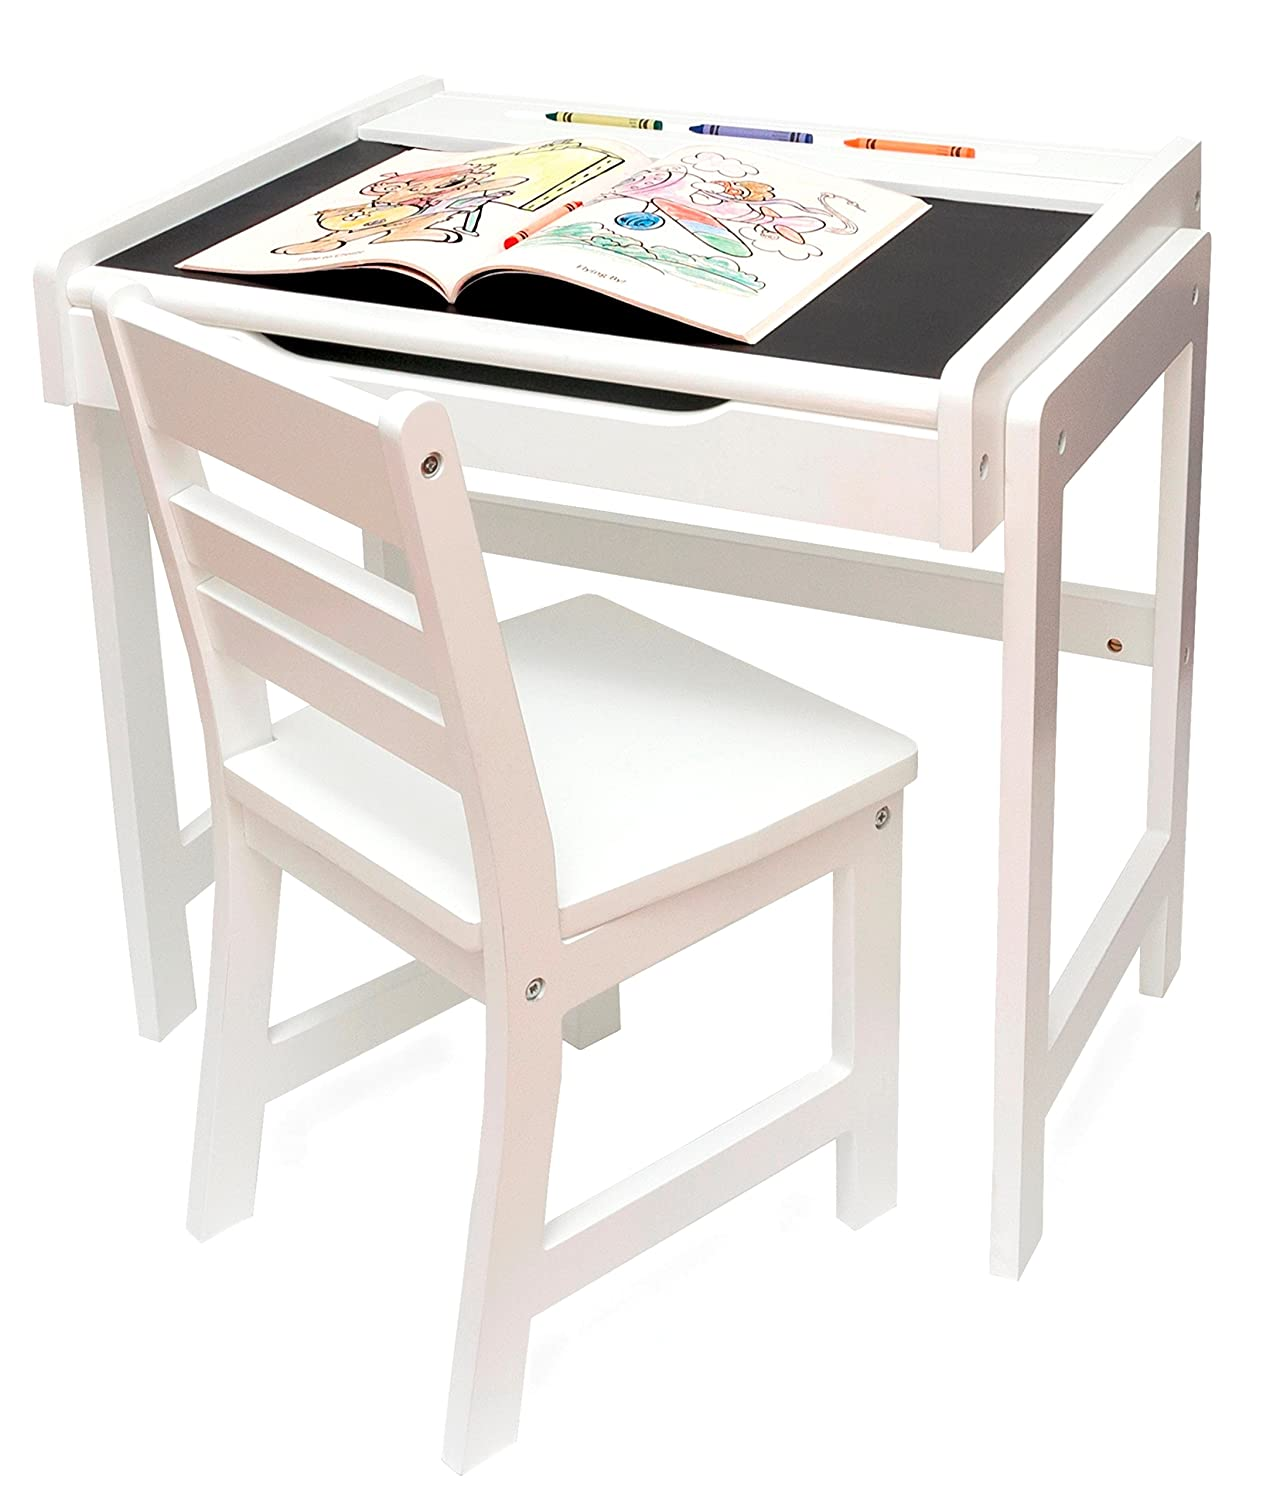 Superieur Amazon.com: Lipper International 654WH Childu0027s Desk With Chalkboard Top And  Chair Set, White: Kitchen U0026 Dining